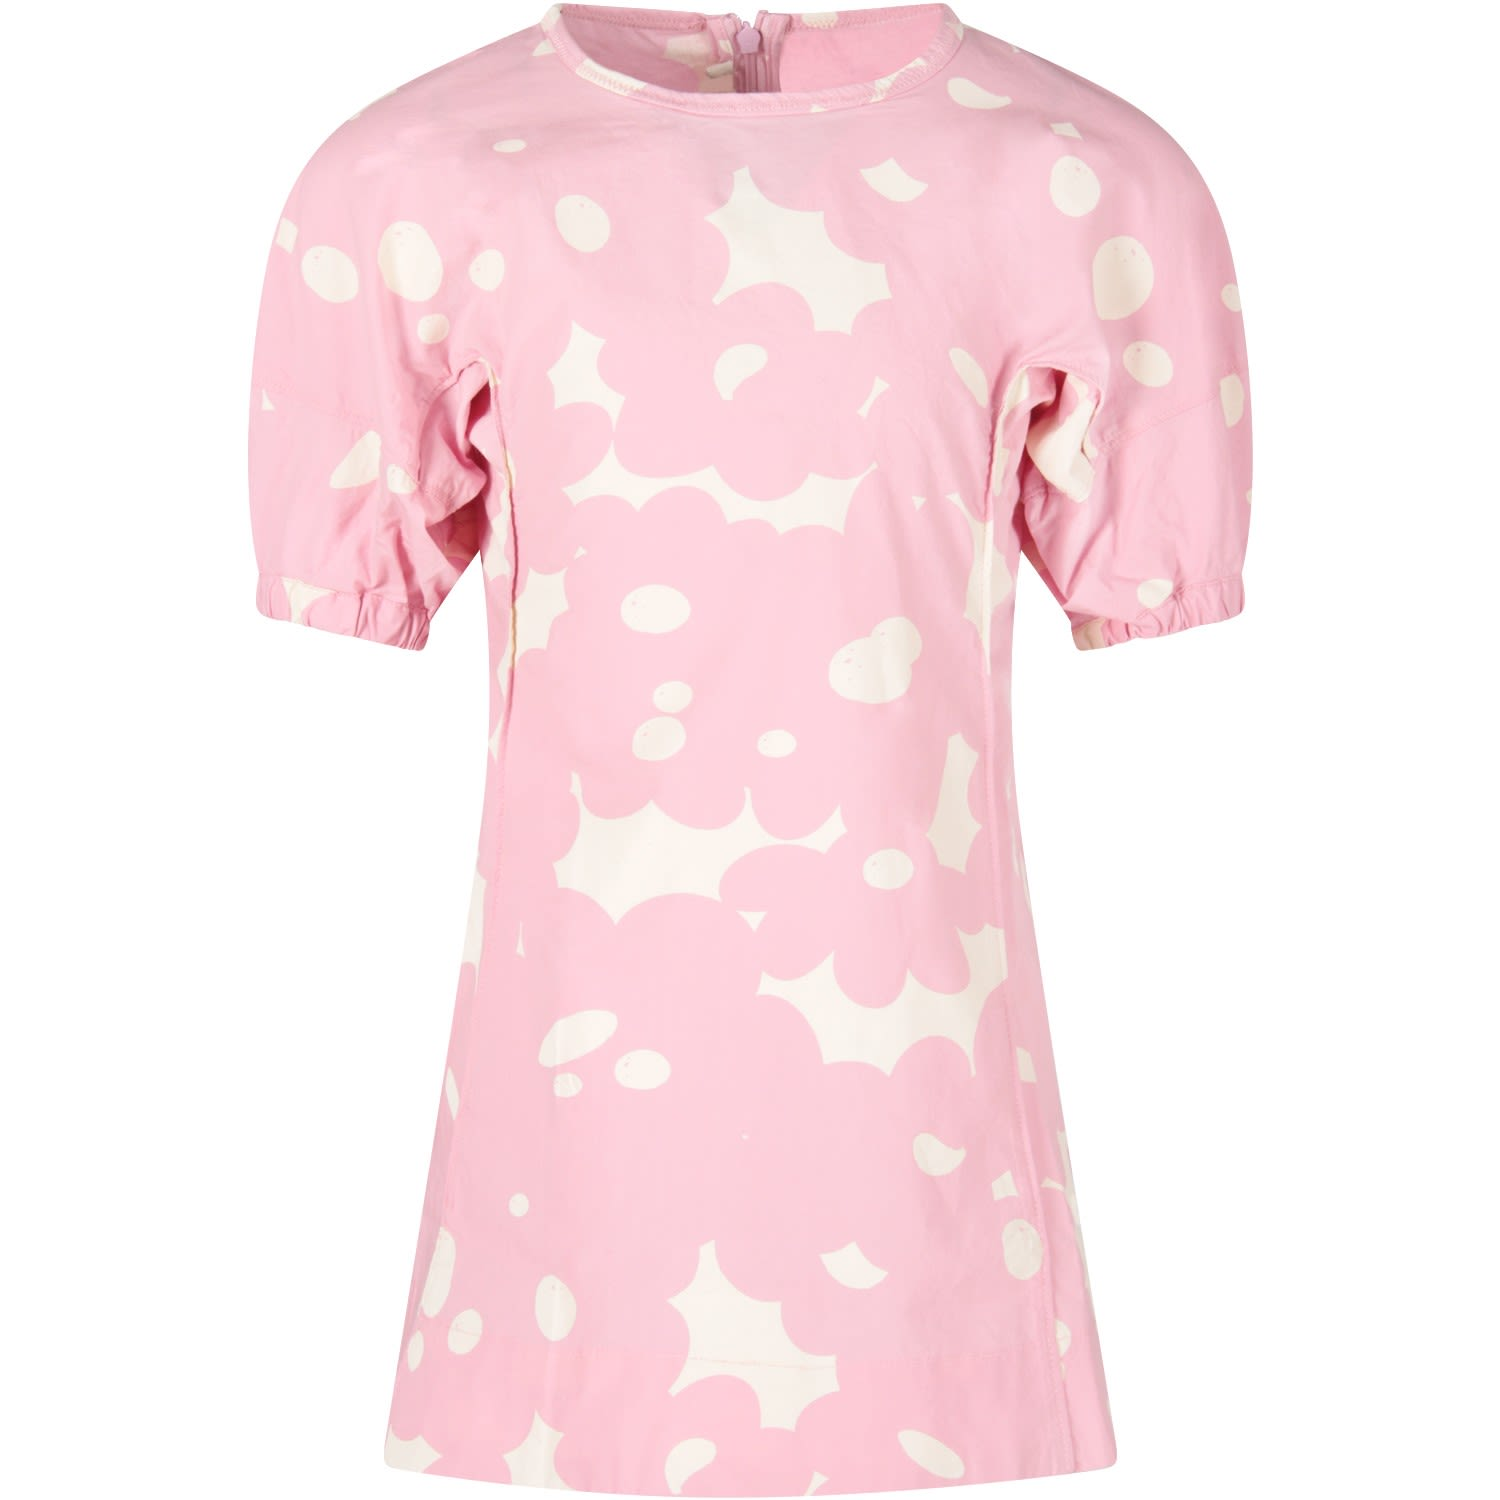 Buy Marni Pink Girl Dress With Ivory Spots online, shop Marni with free shipping